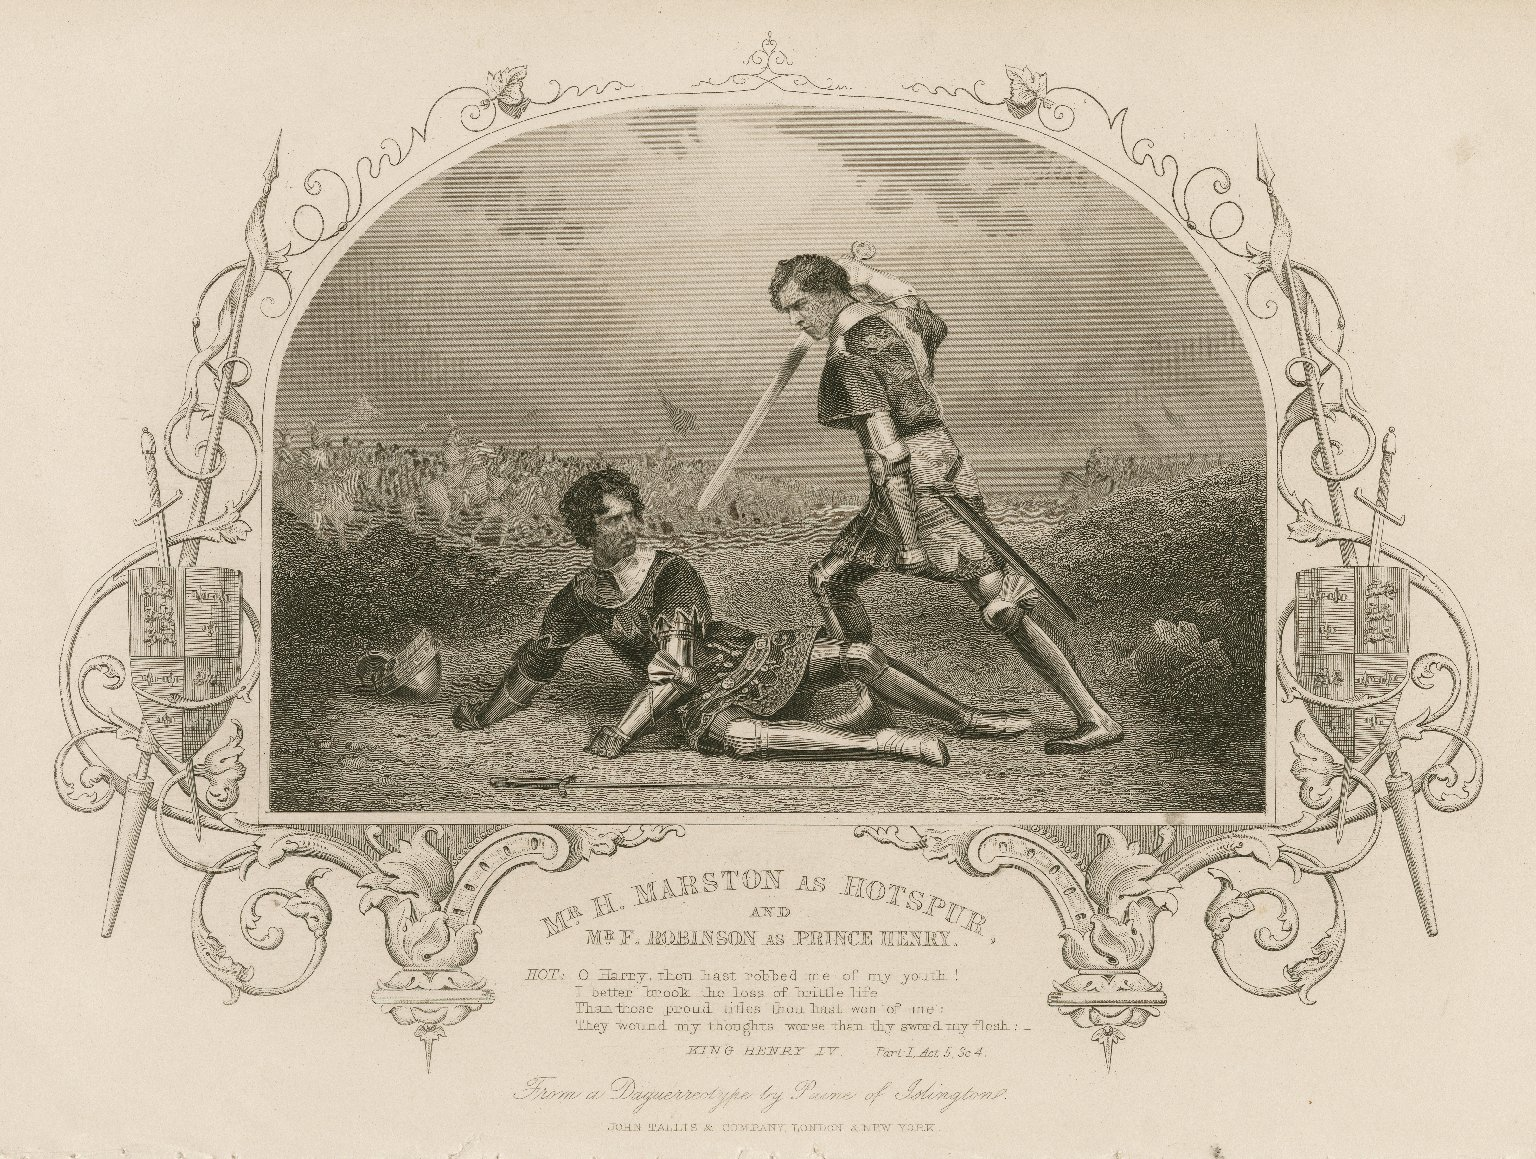 Mr. H. Marston as Hotspur, and Mr. F. Robinson as Prince Henry ... King Henry IV, part 1, act 5, sc. 4 [by Shakespeare] [graphic].